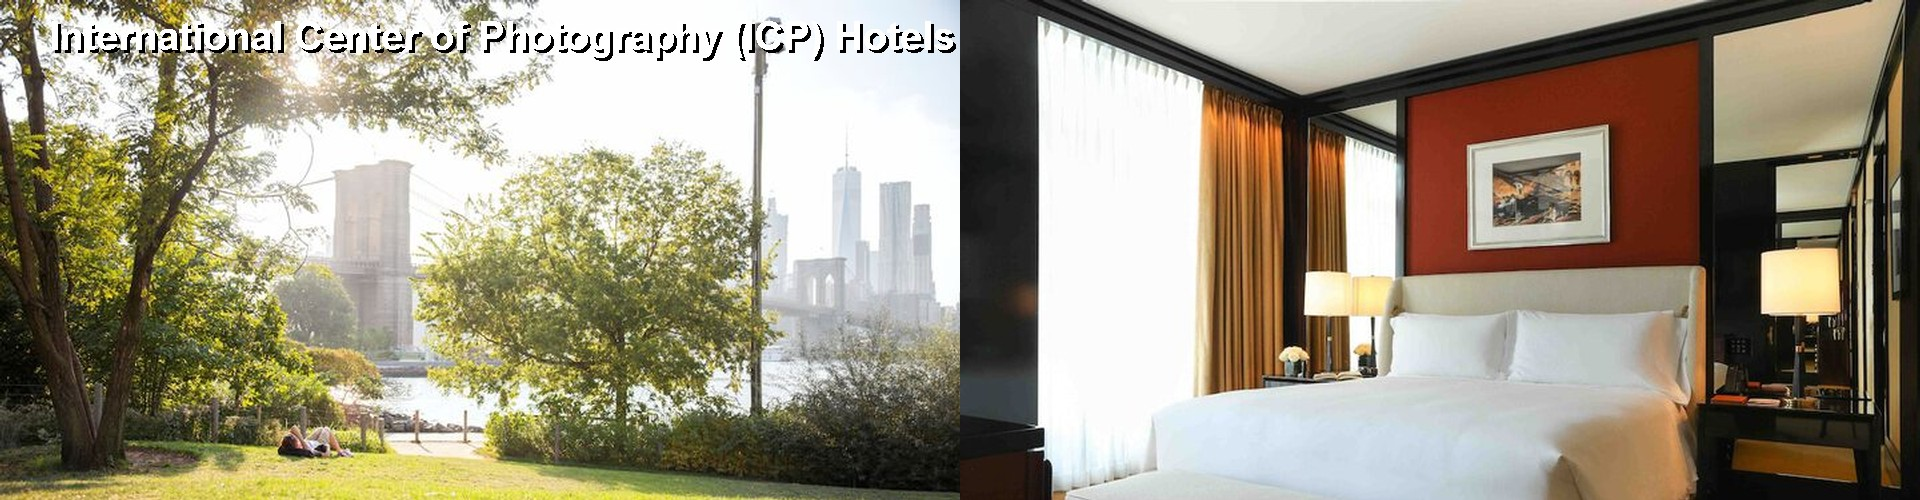 5 Best Hotels near International Center of Photography (ICP)